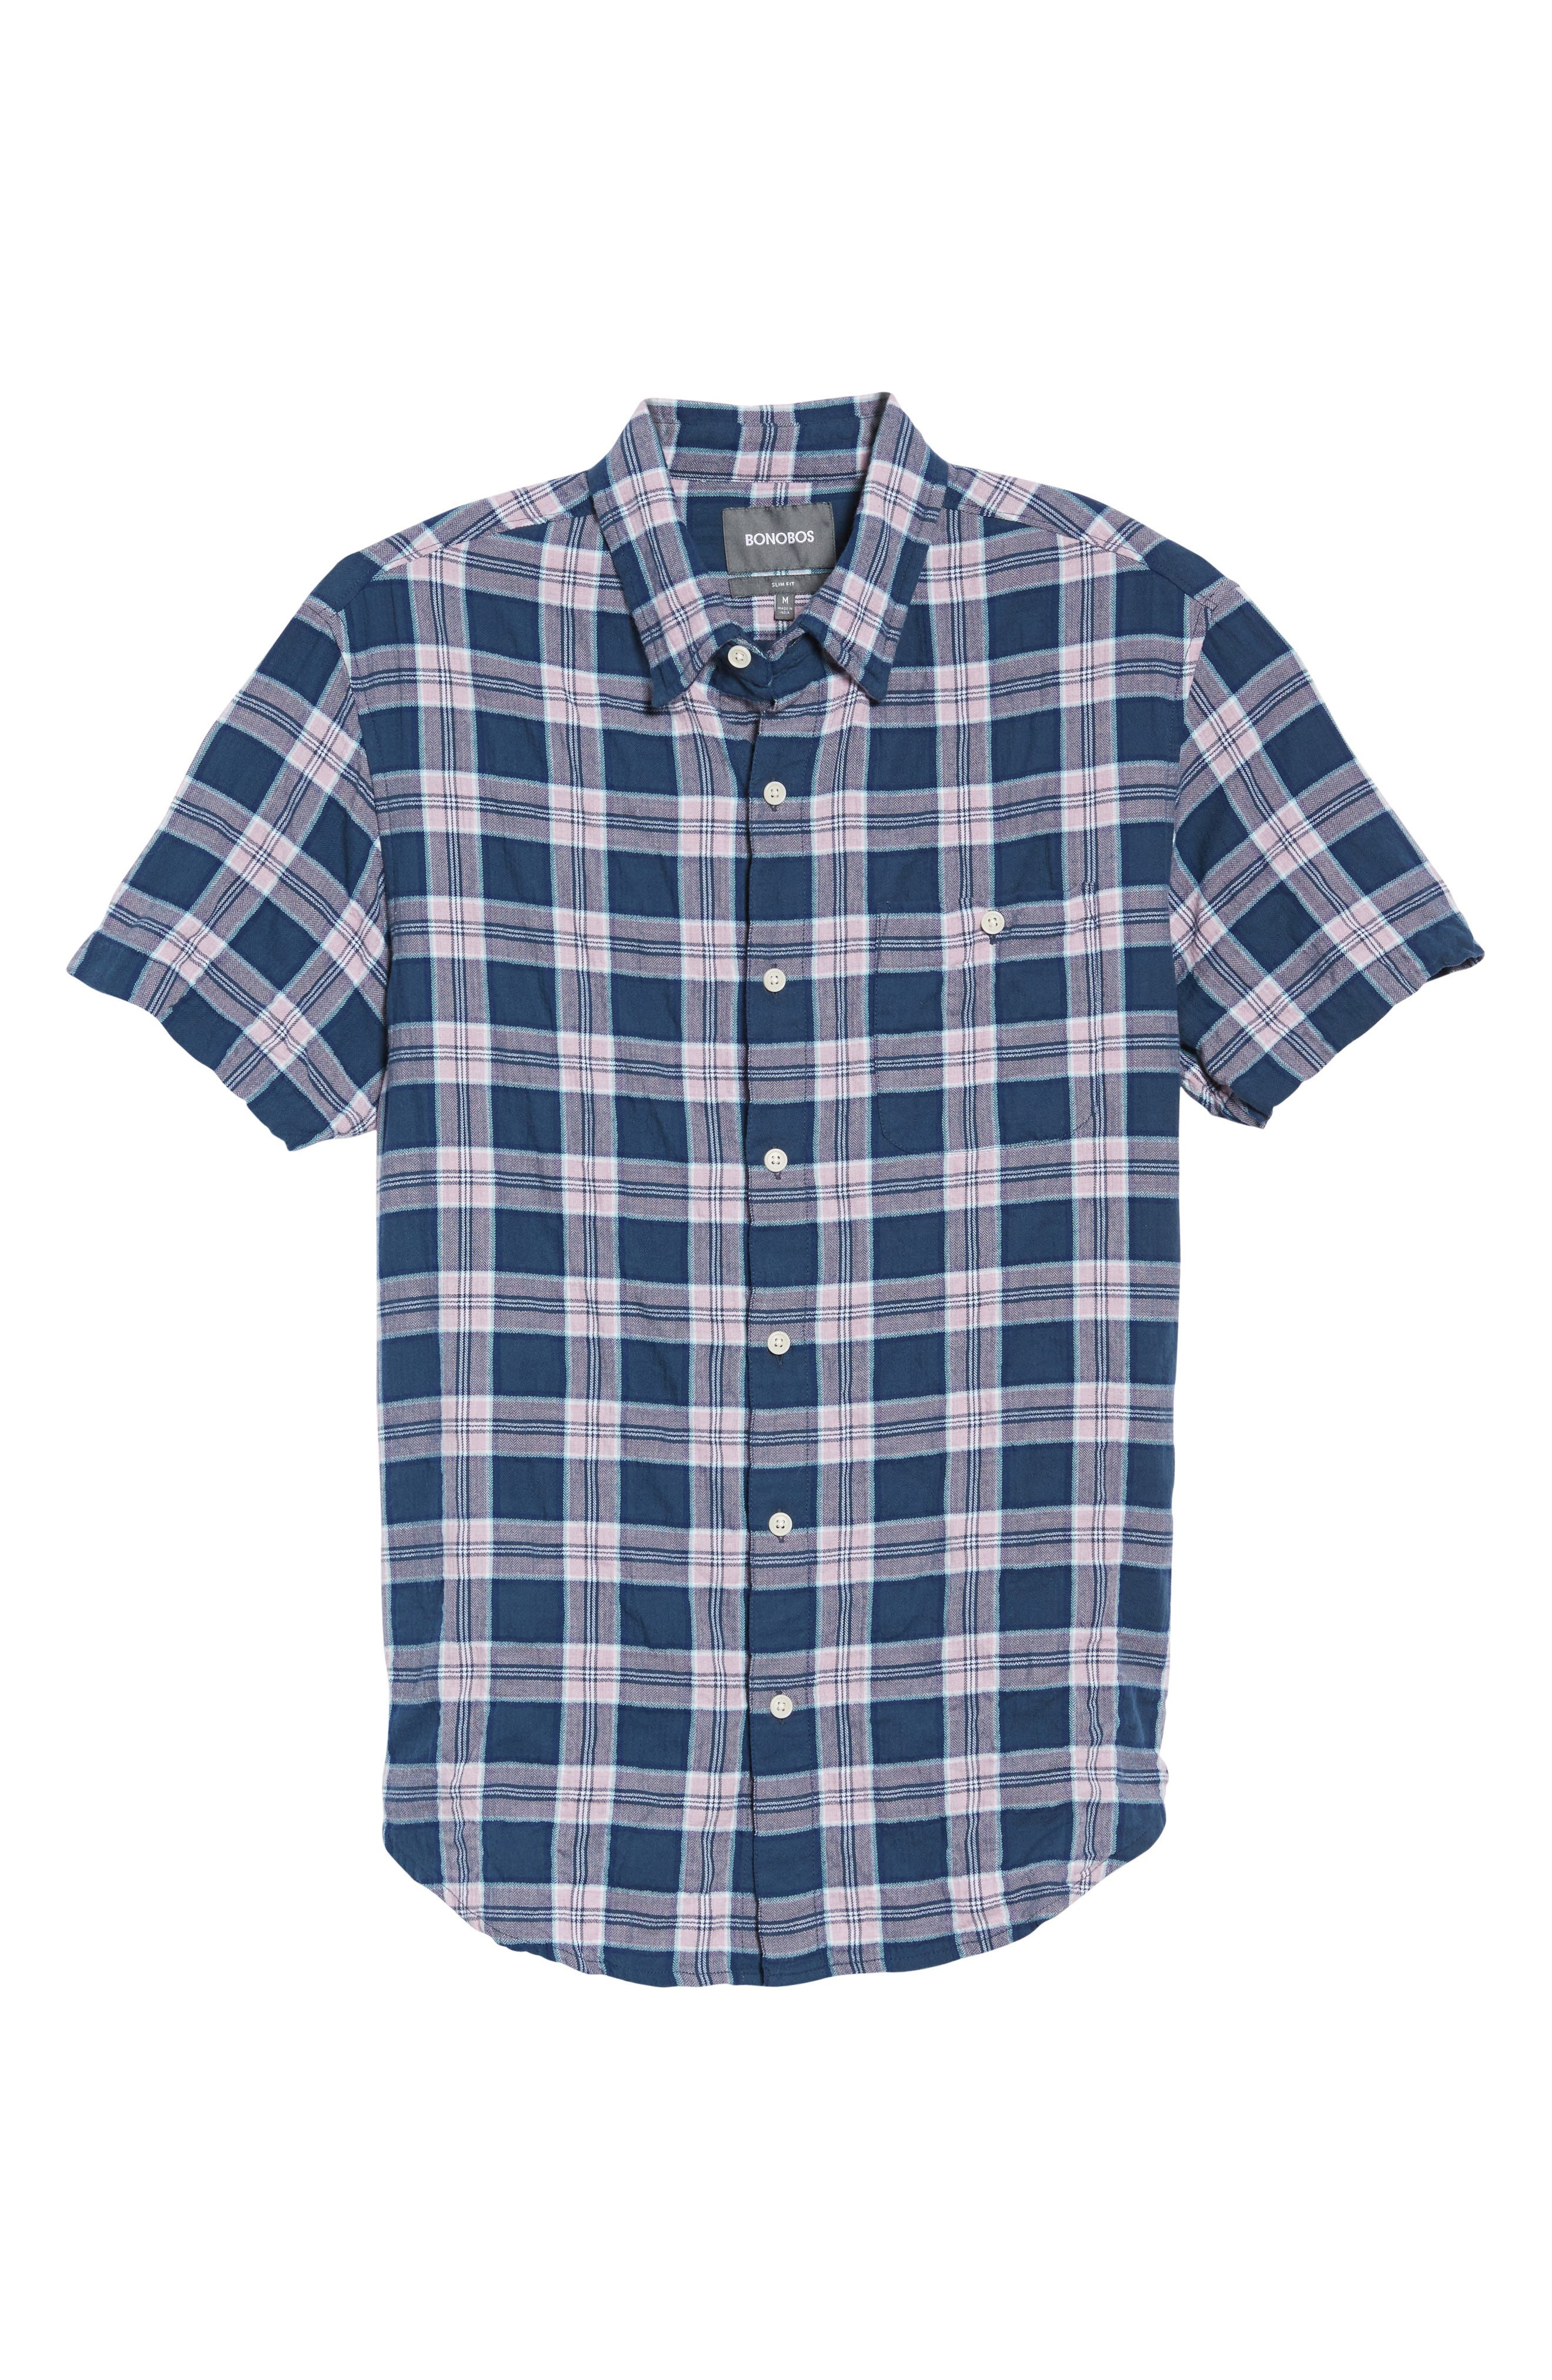 Riviera Slim Fit Plaid Woven Shirt,                             Alternate thumbnail 6, color,